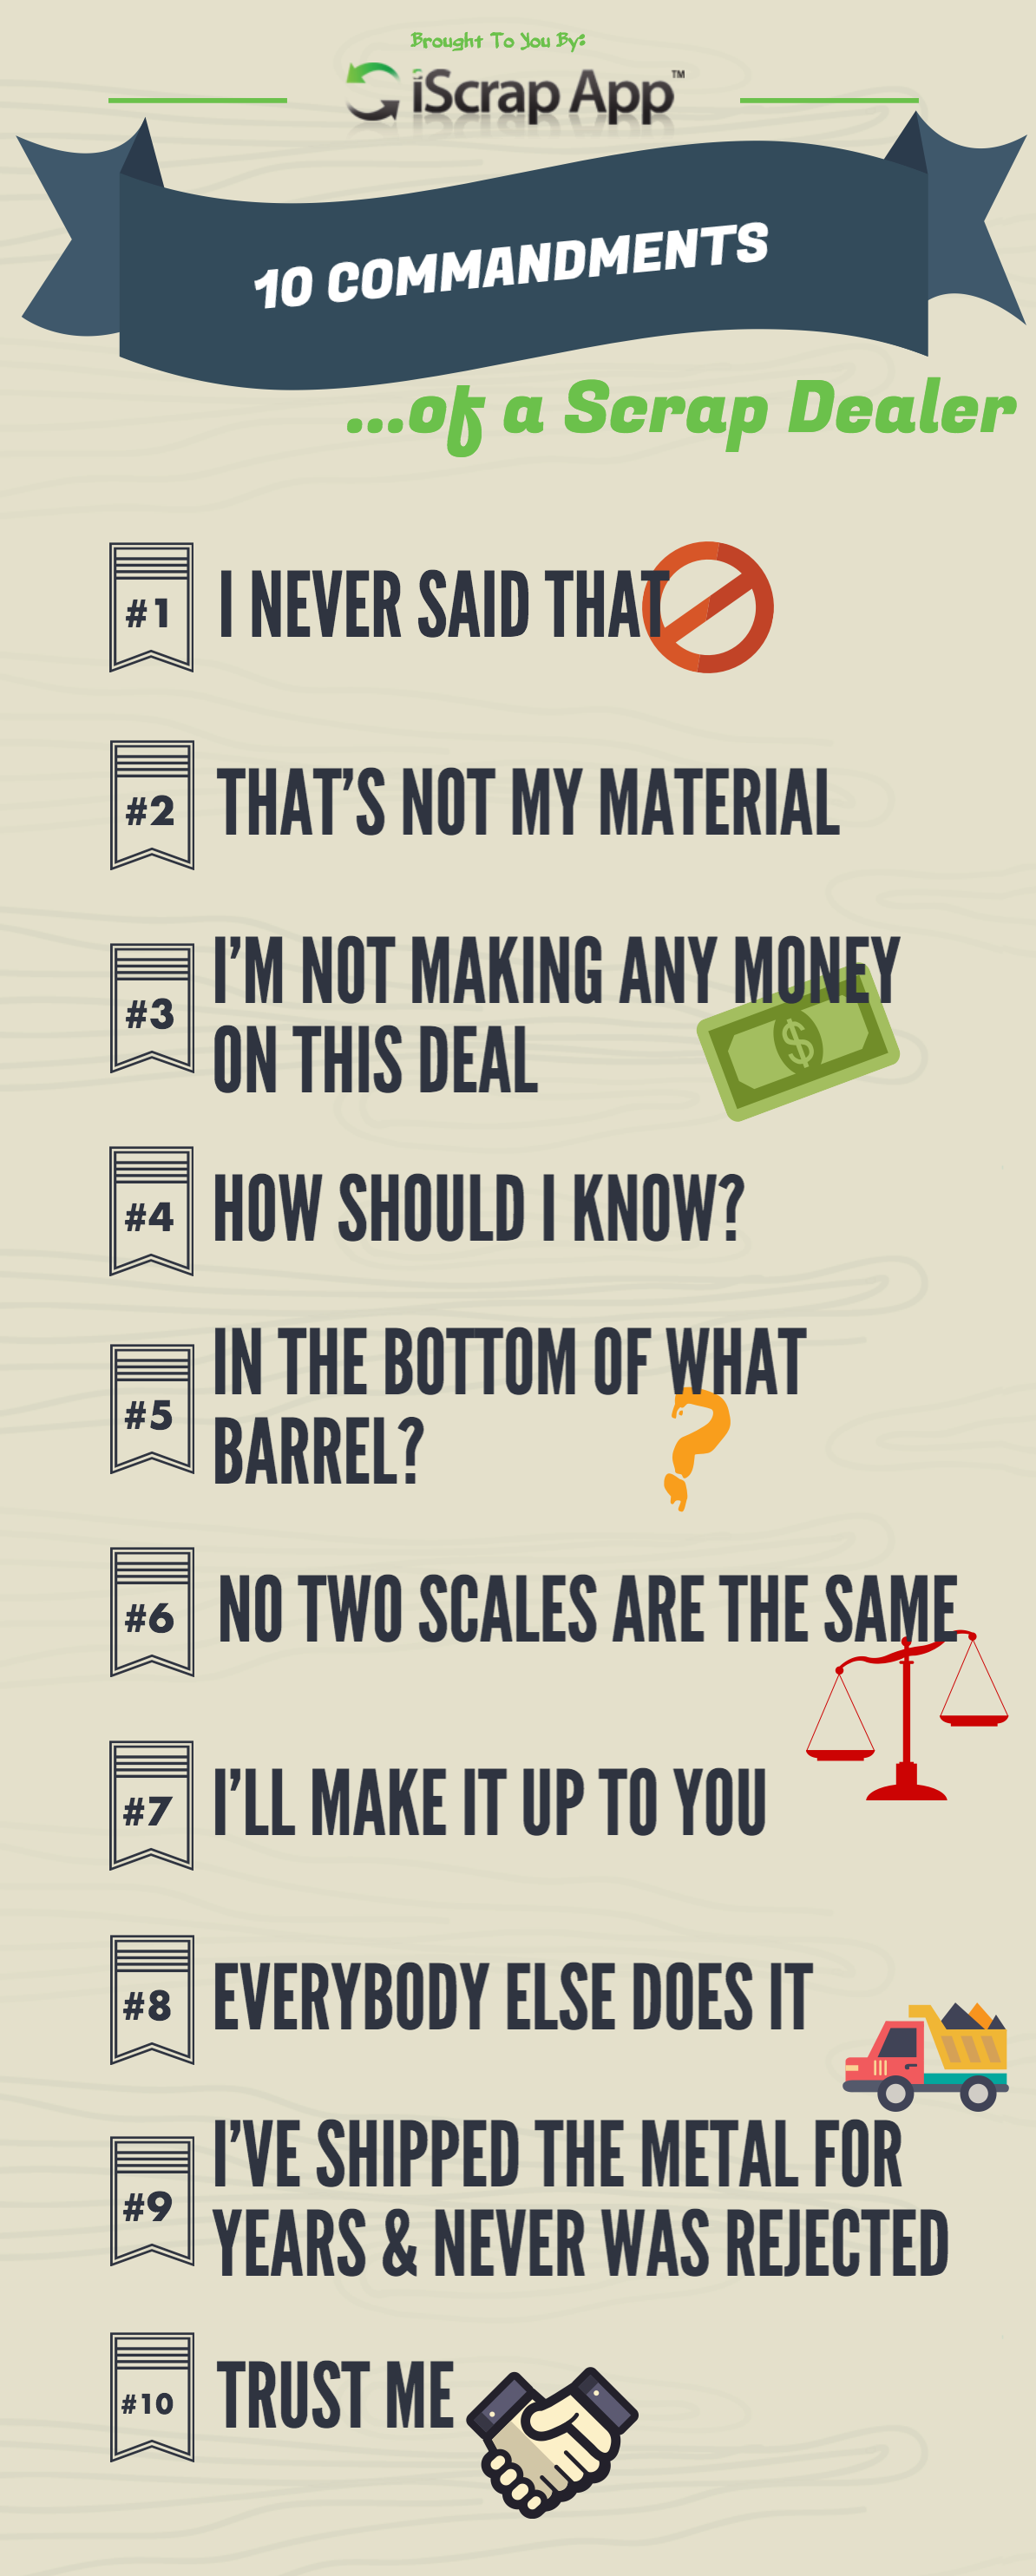 infographic] 10 commandments of a scrap dealer - iscrap app